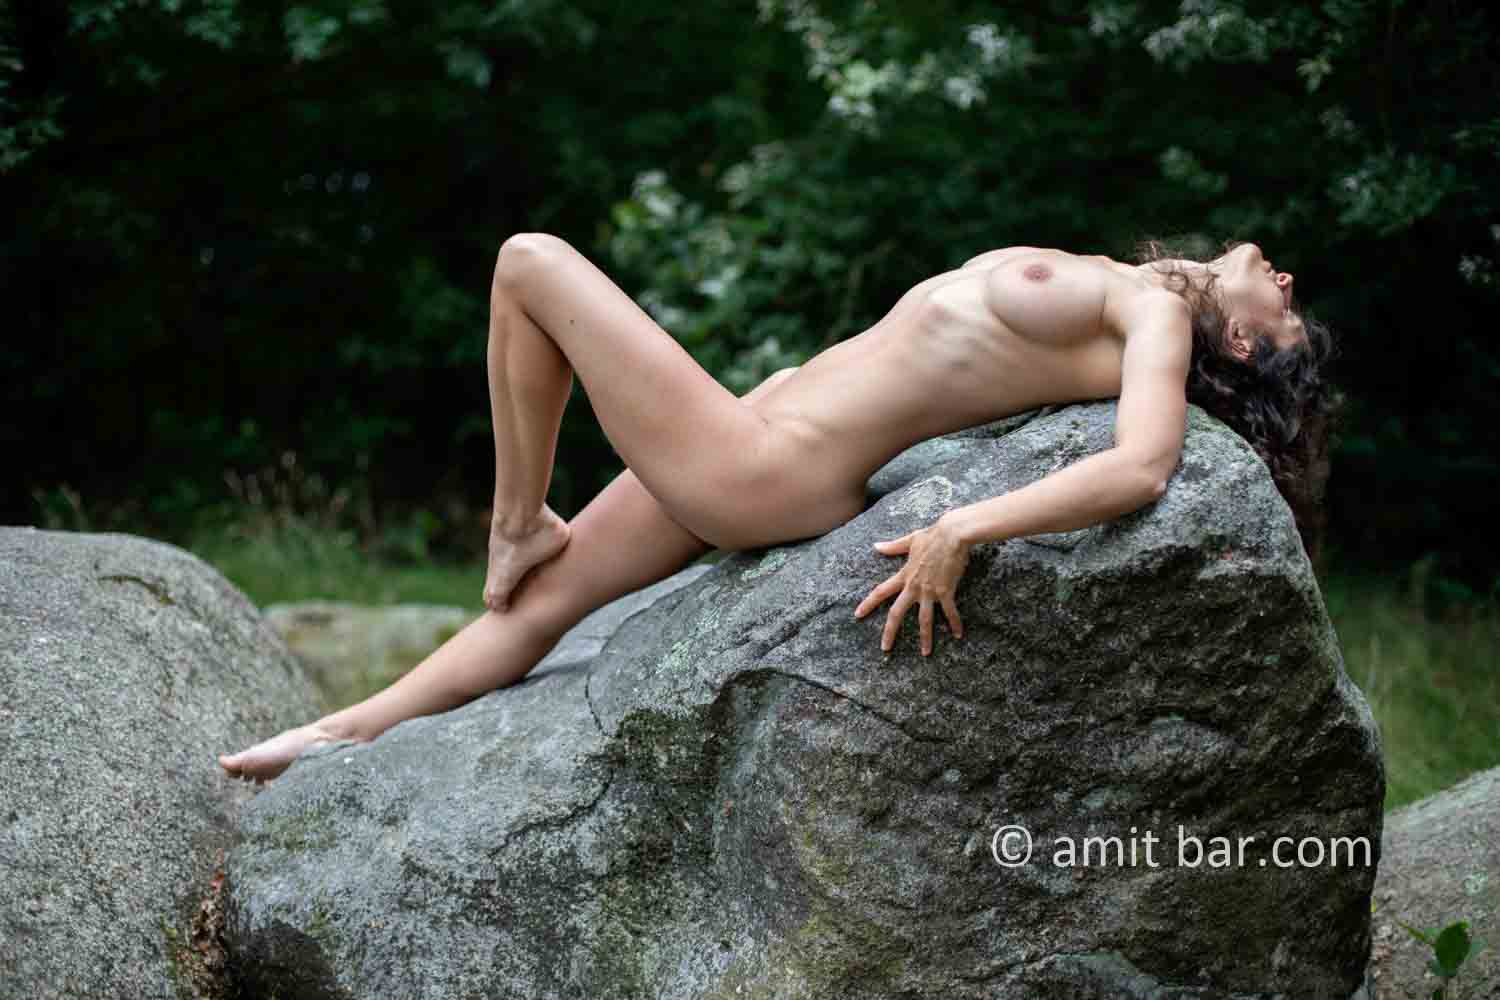 Dolmen woman IV: Elle is walking and laying around and on the huge stones of the dolmen at Drenthe, The Netherlands